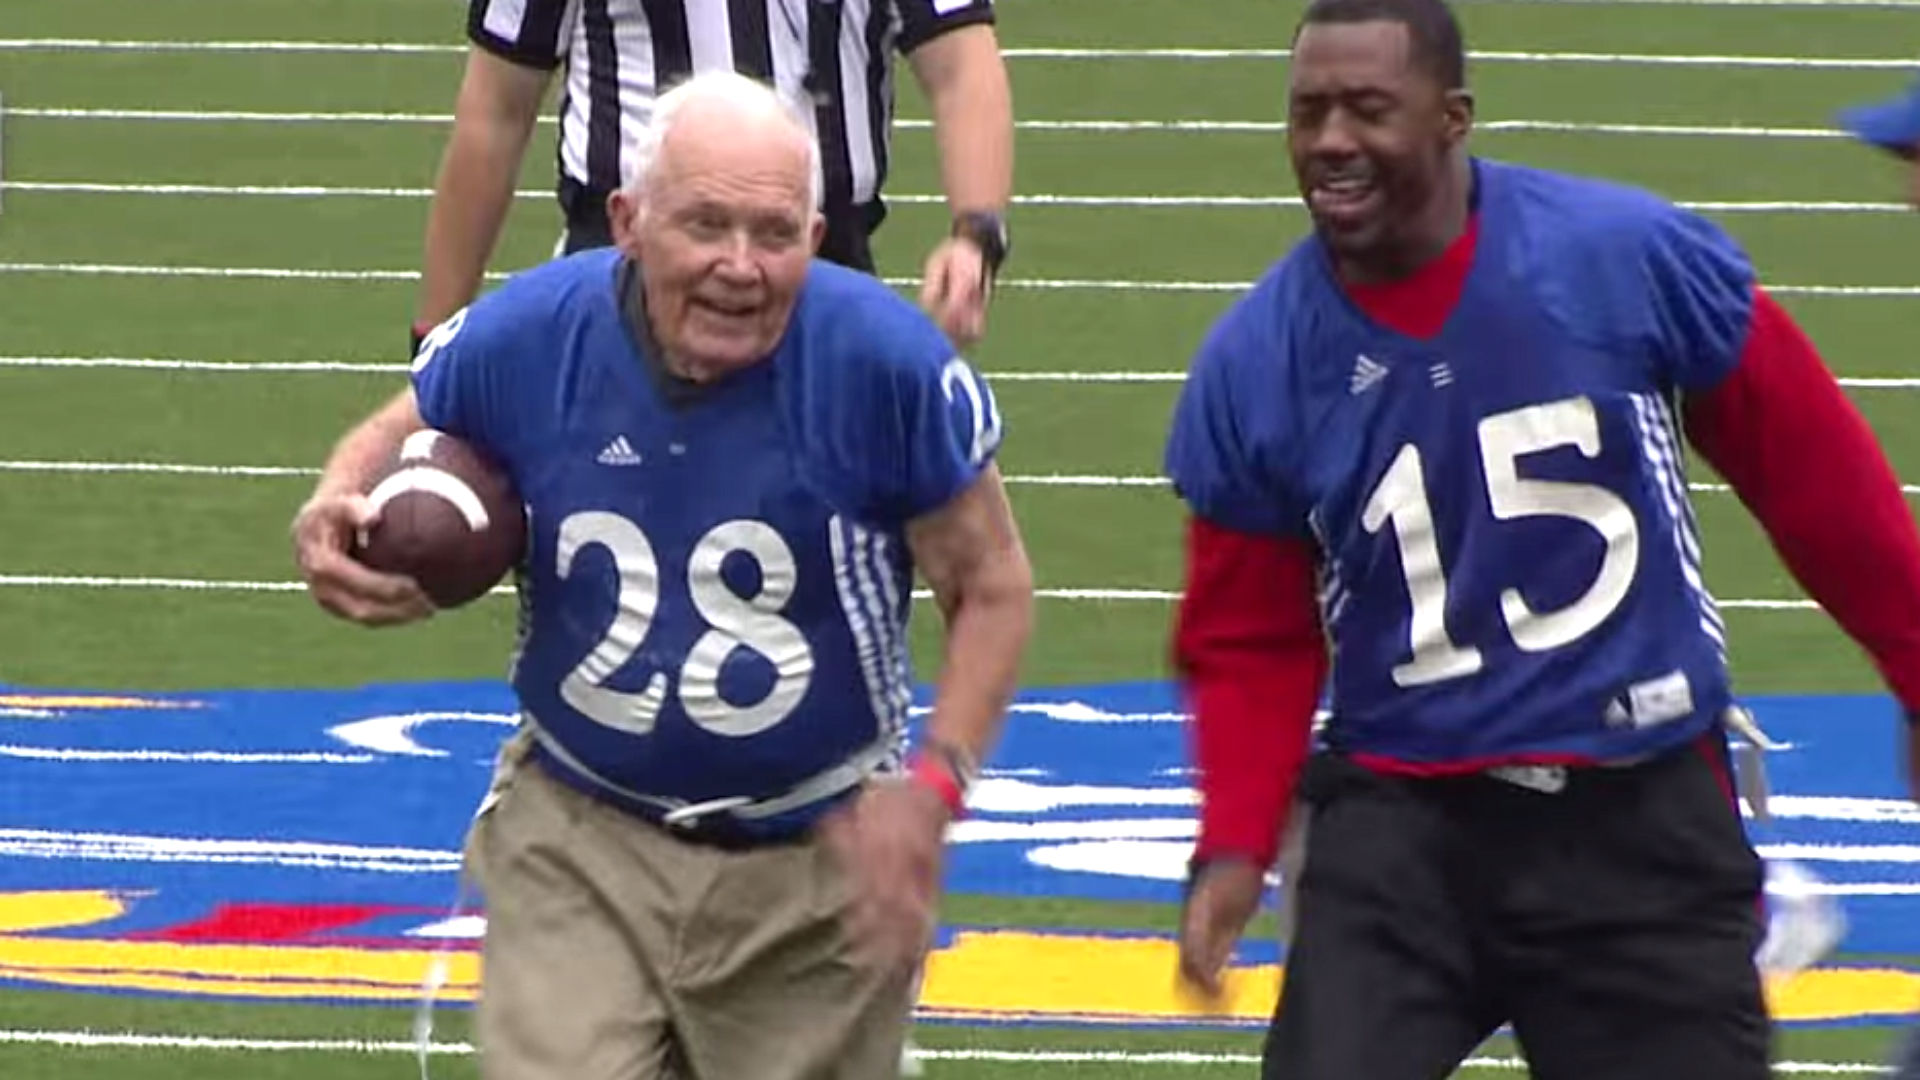 WWII veteran, 89, scores touchdown at Kansas alumni flag football game